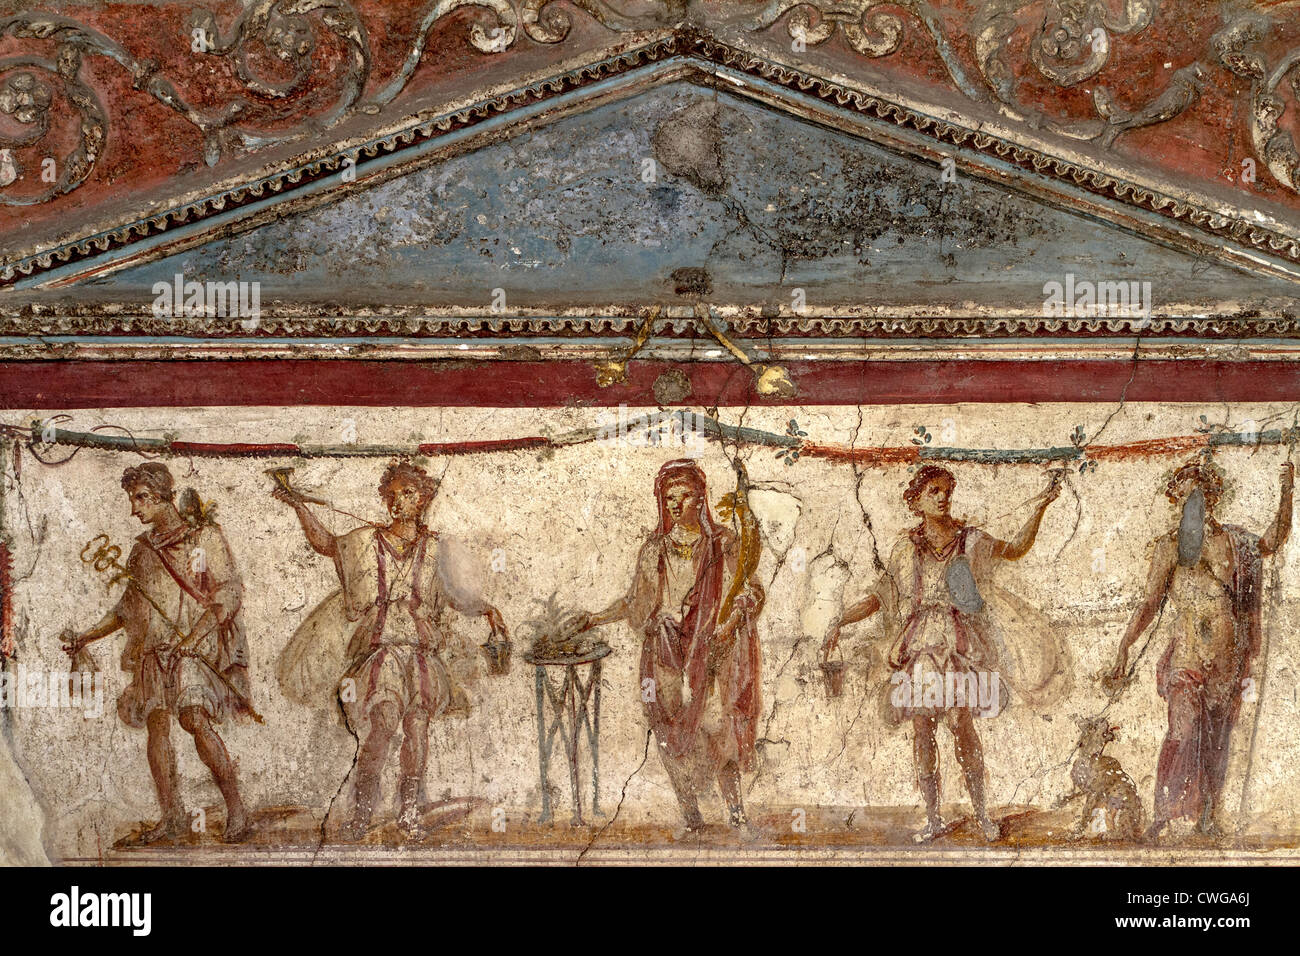 Ancient Roman mural at the excavated city of Pompeii Stock Photo